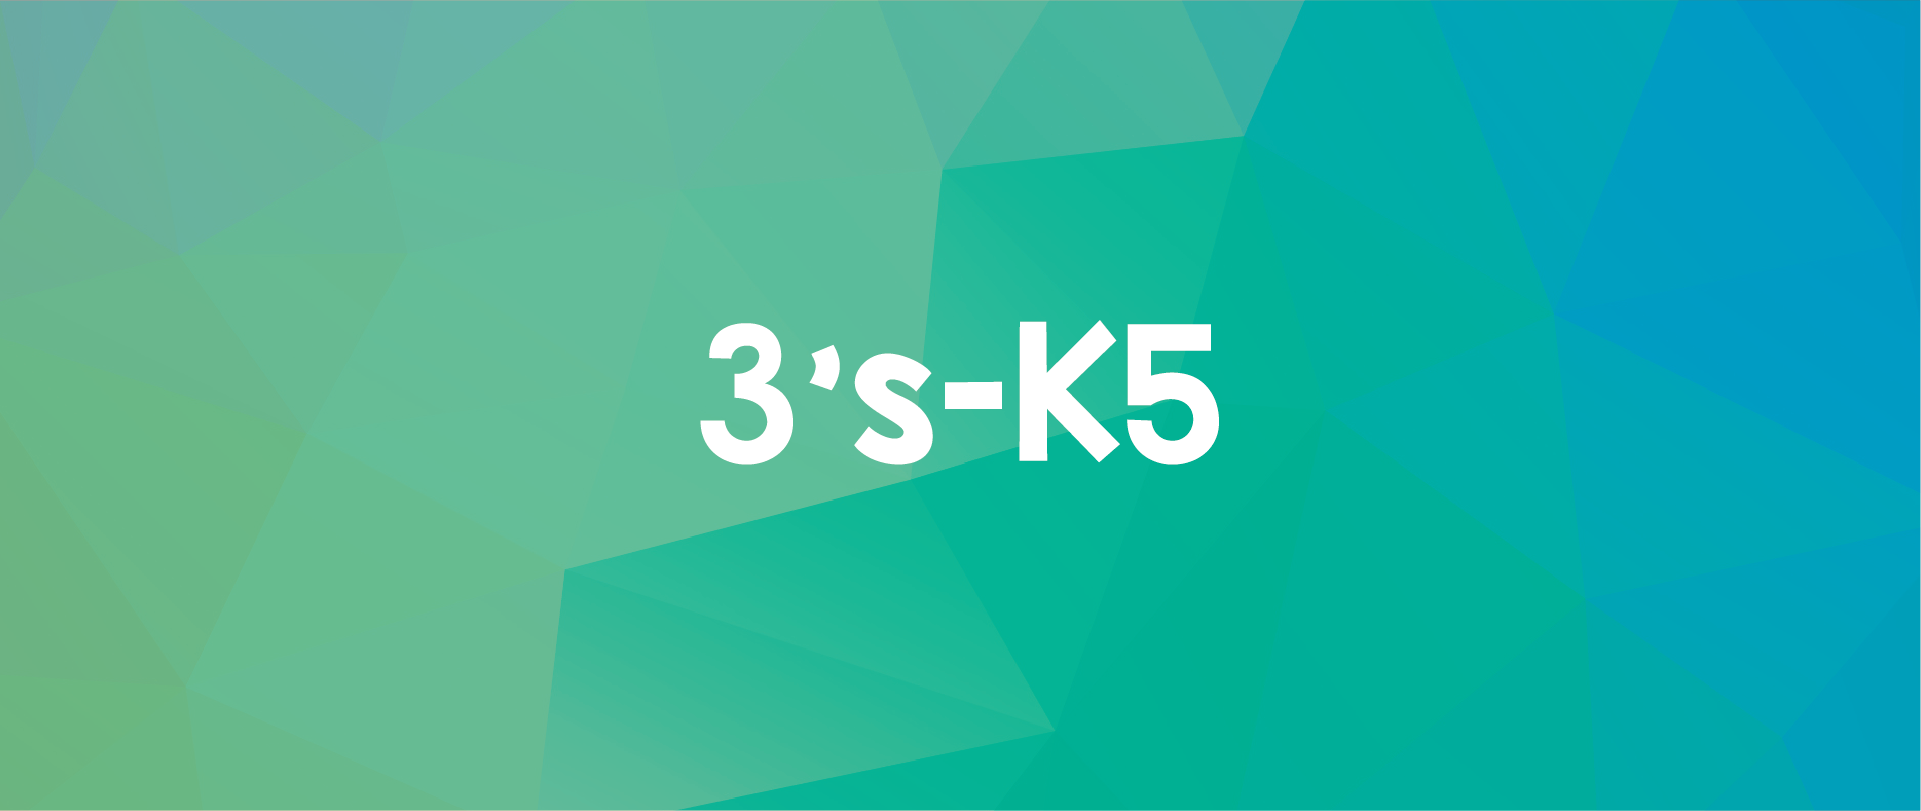 3's-K5.png